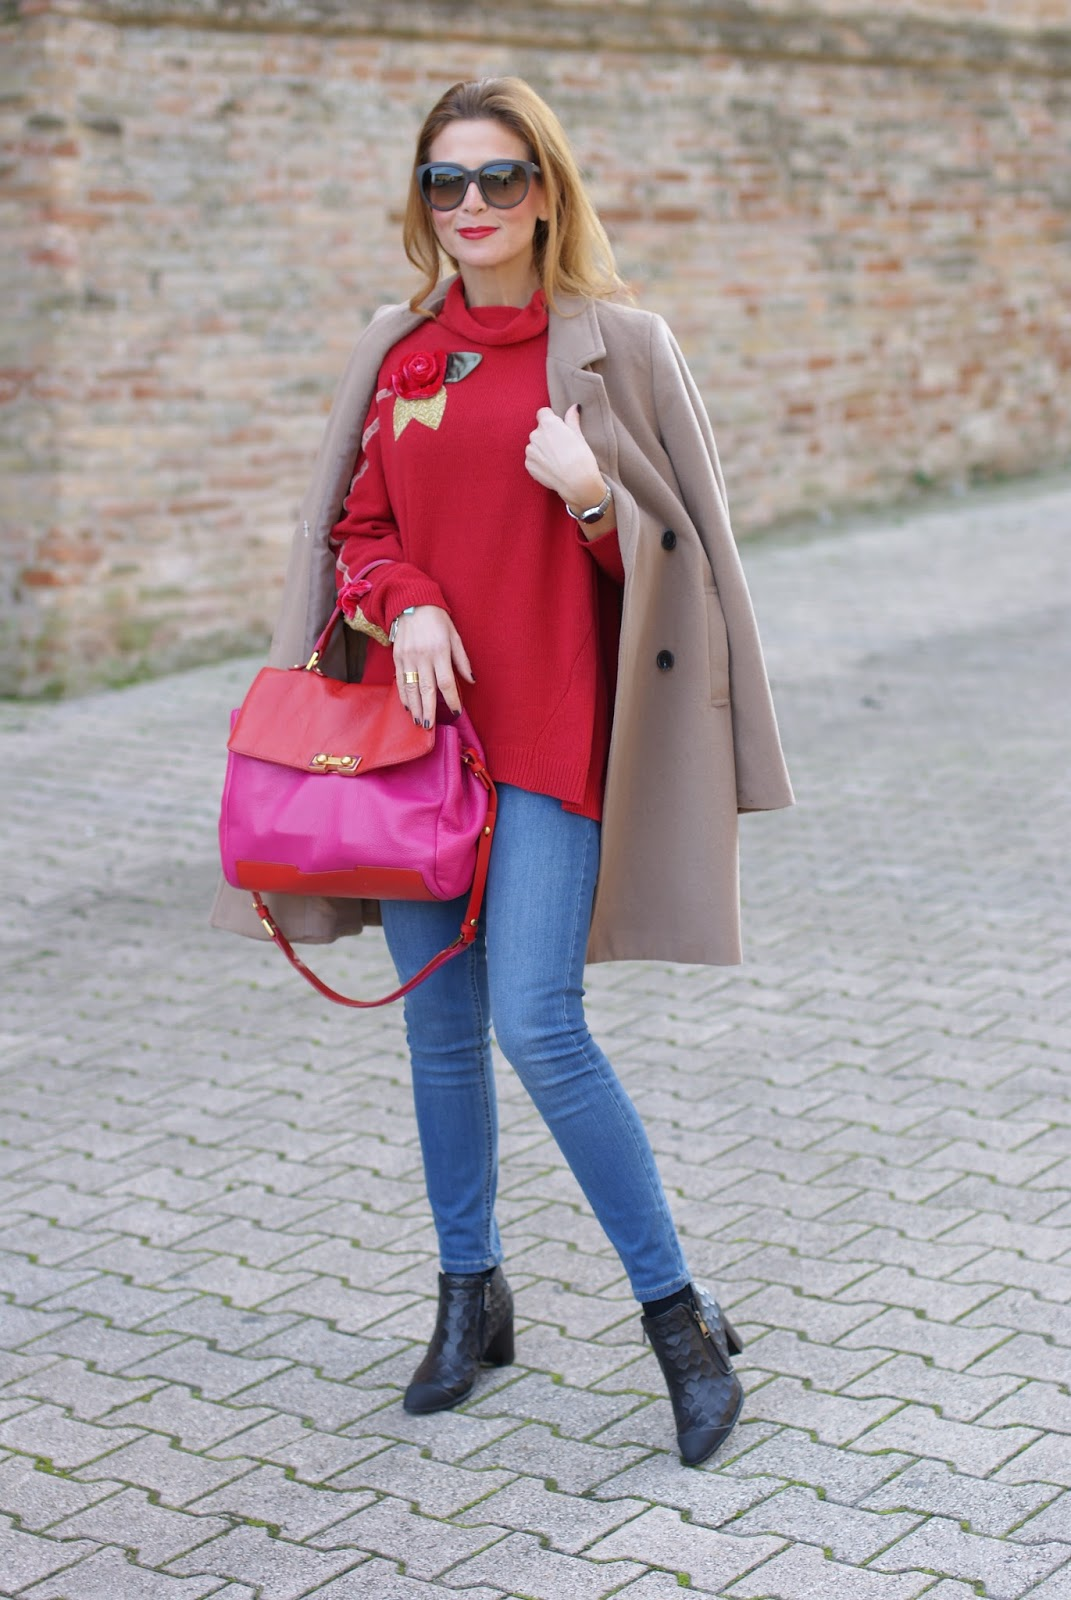 Kiabi Camel boyfriend coat and roberto botticelli shoes on Fashion and Cookies fashion blog, fashion blogger style